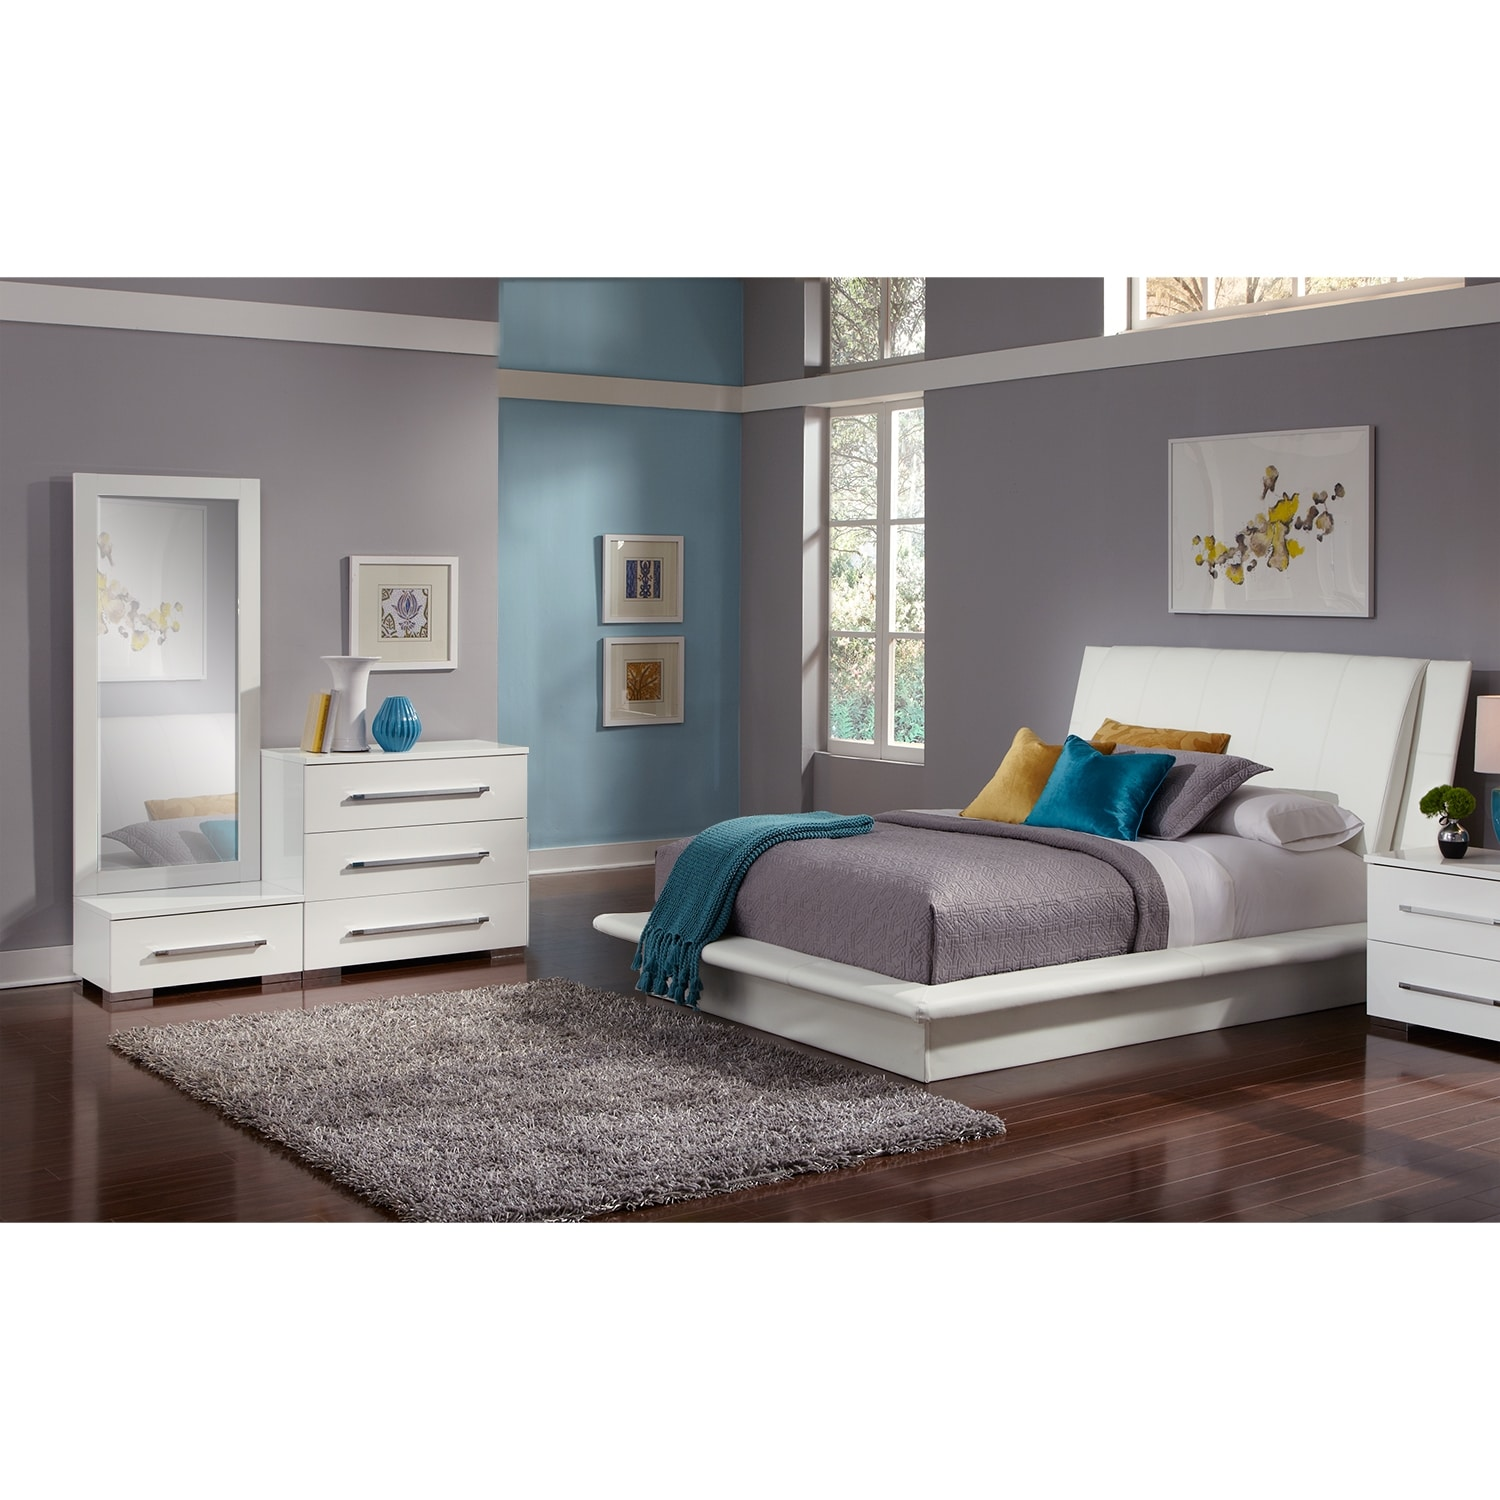 Dimora 5-Piece King Upholstered Bedroom Set - White